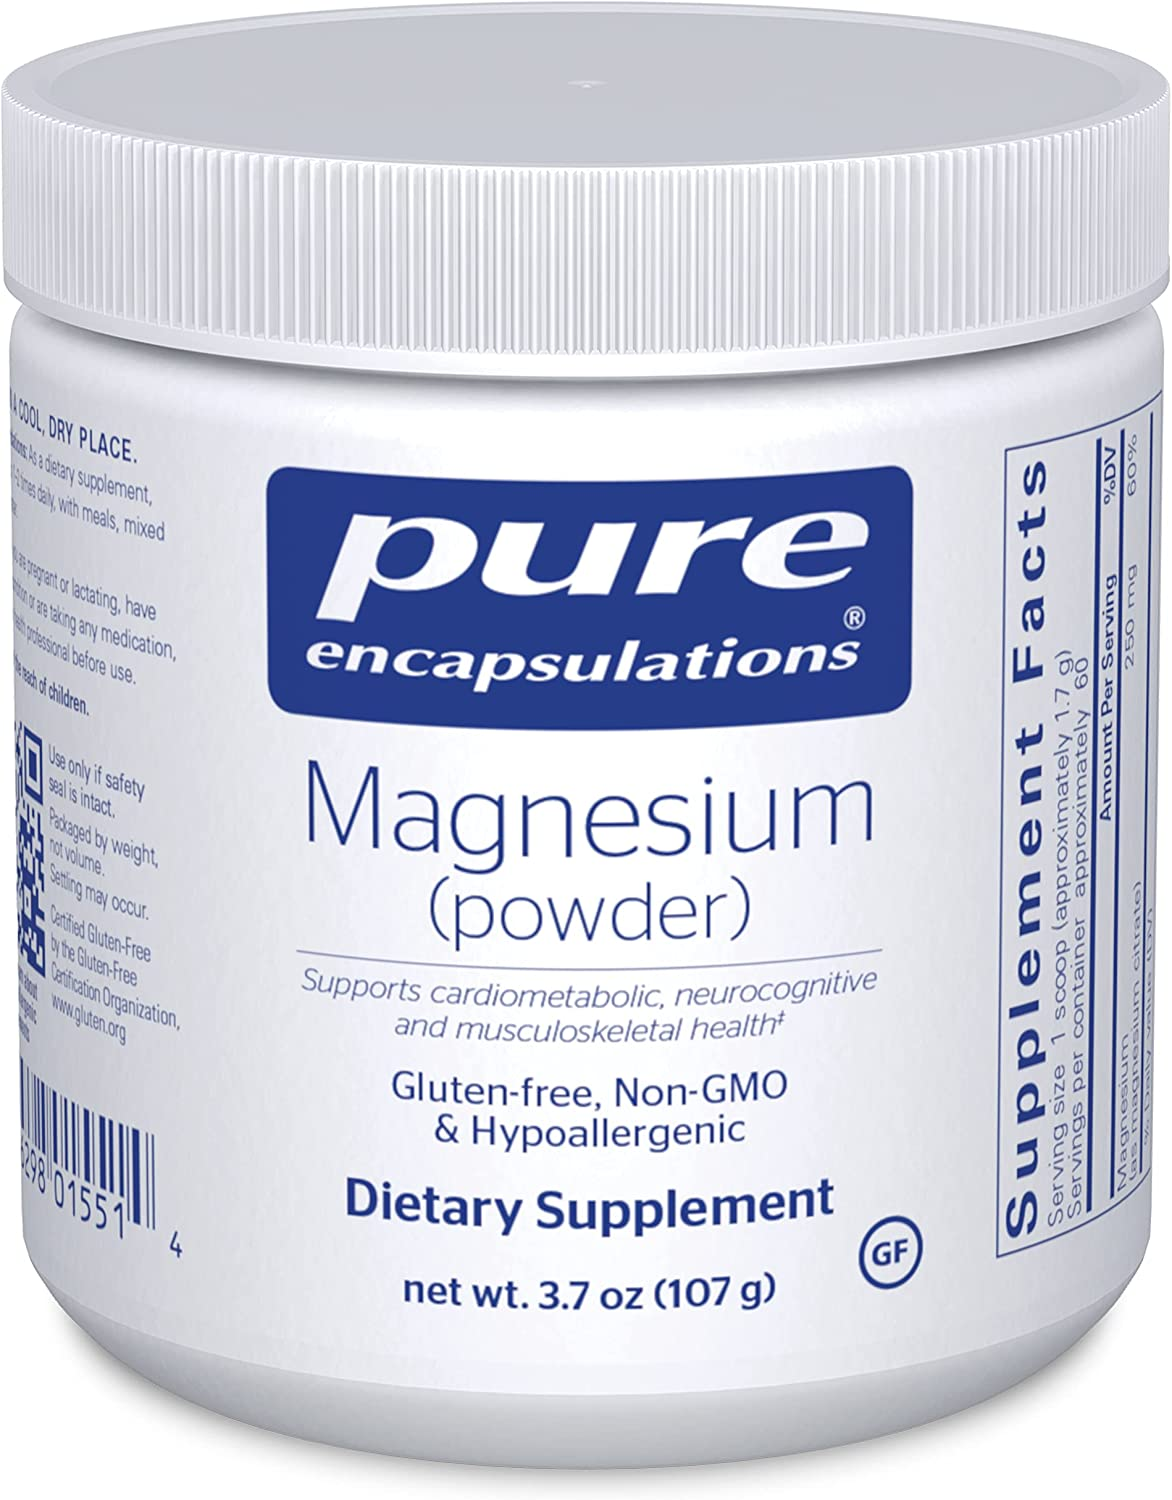 Pure Encapsulations - Magnesium Today's only Cardiovascul Supports Powder Charlotte Mall